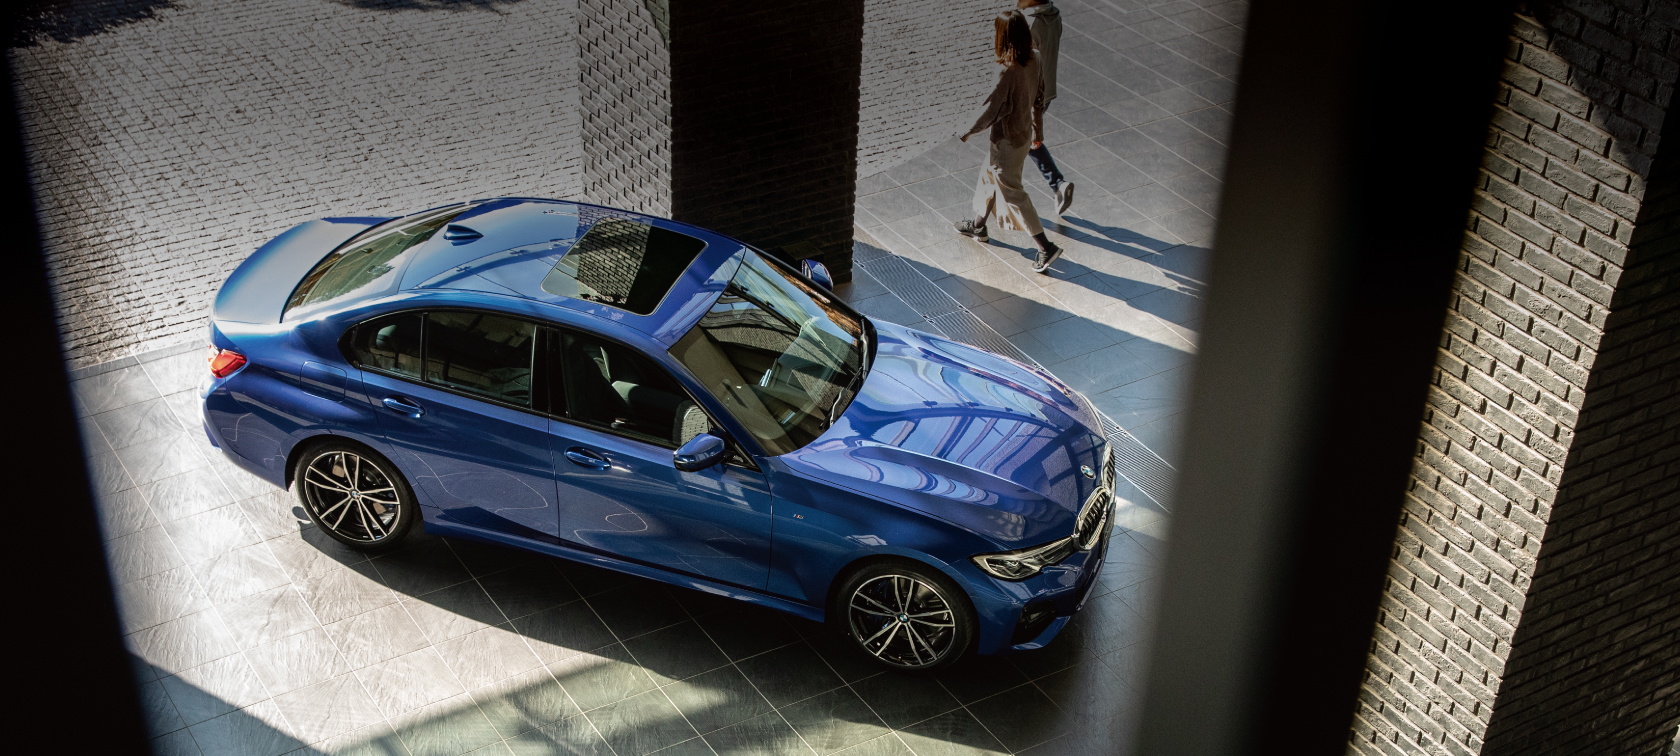 TRY THE NEW BMW 3 SERIES.